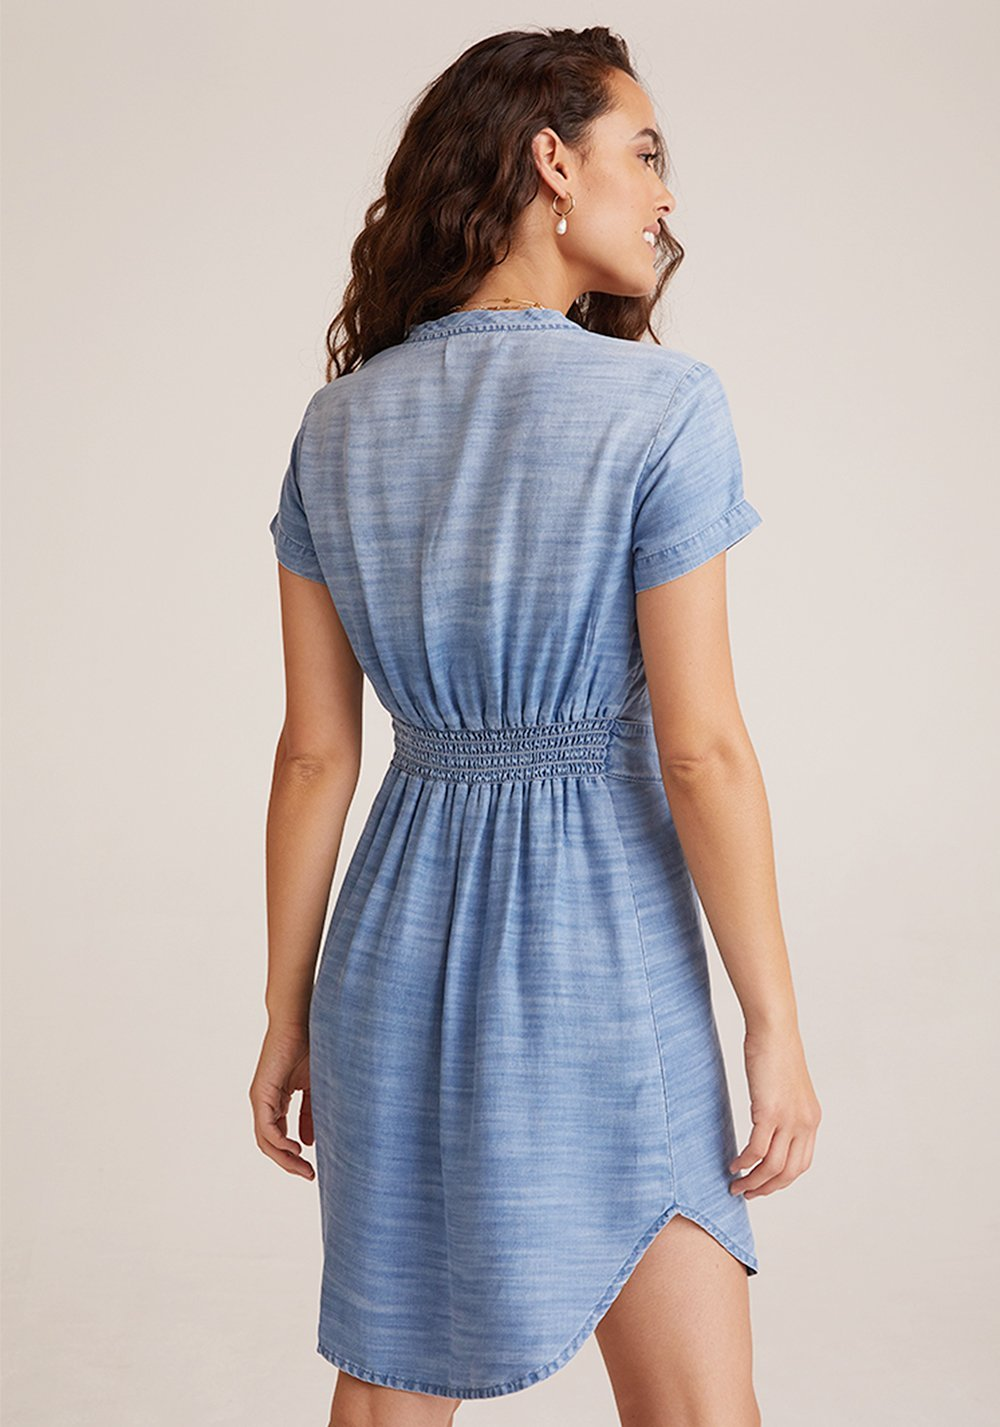 BELLA DAHL - Smock Waist V Neck Dress online at PAYA boutique